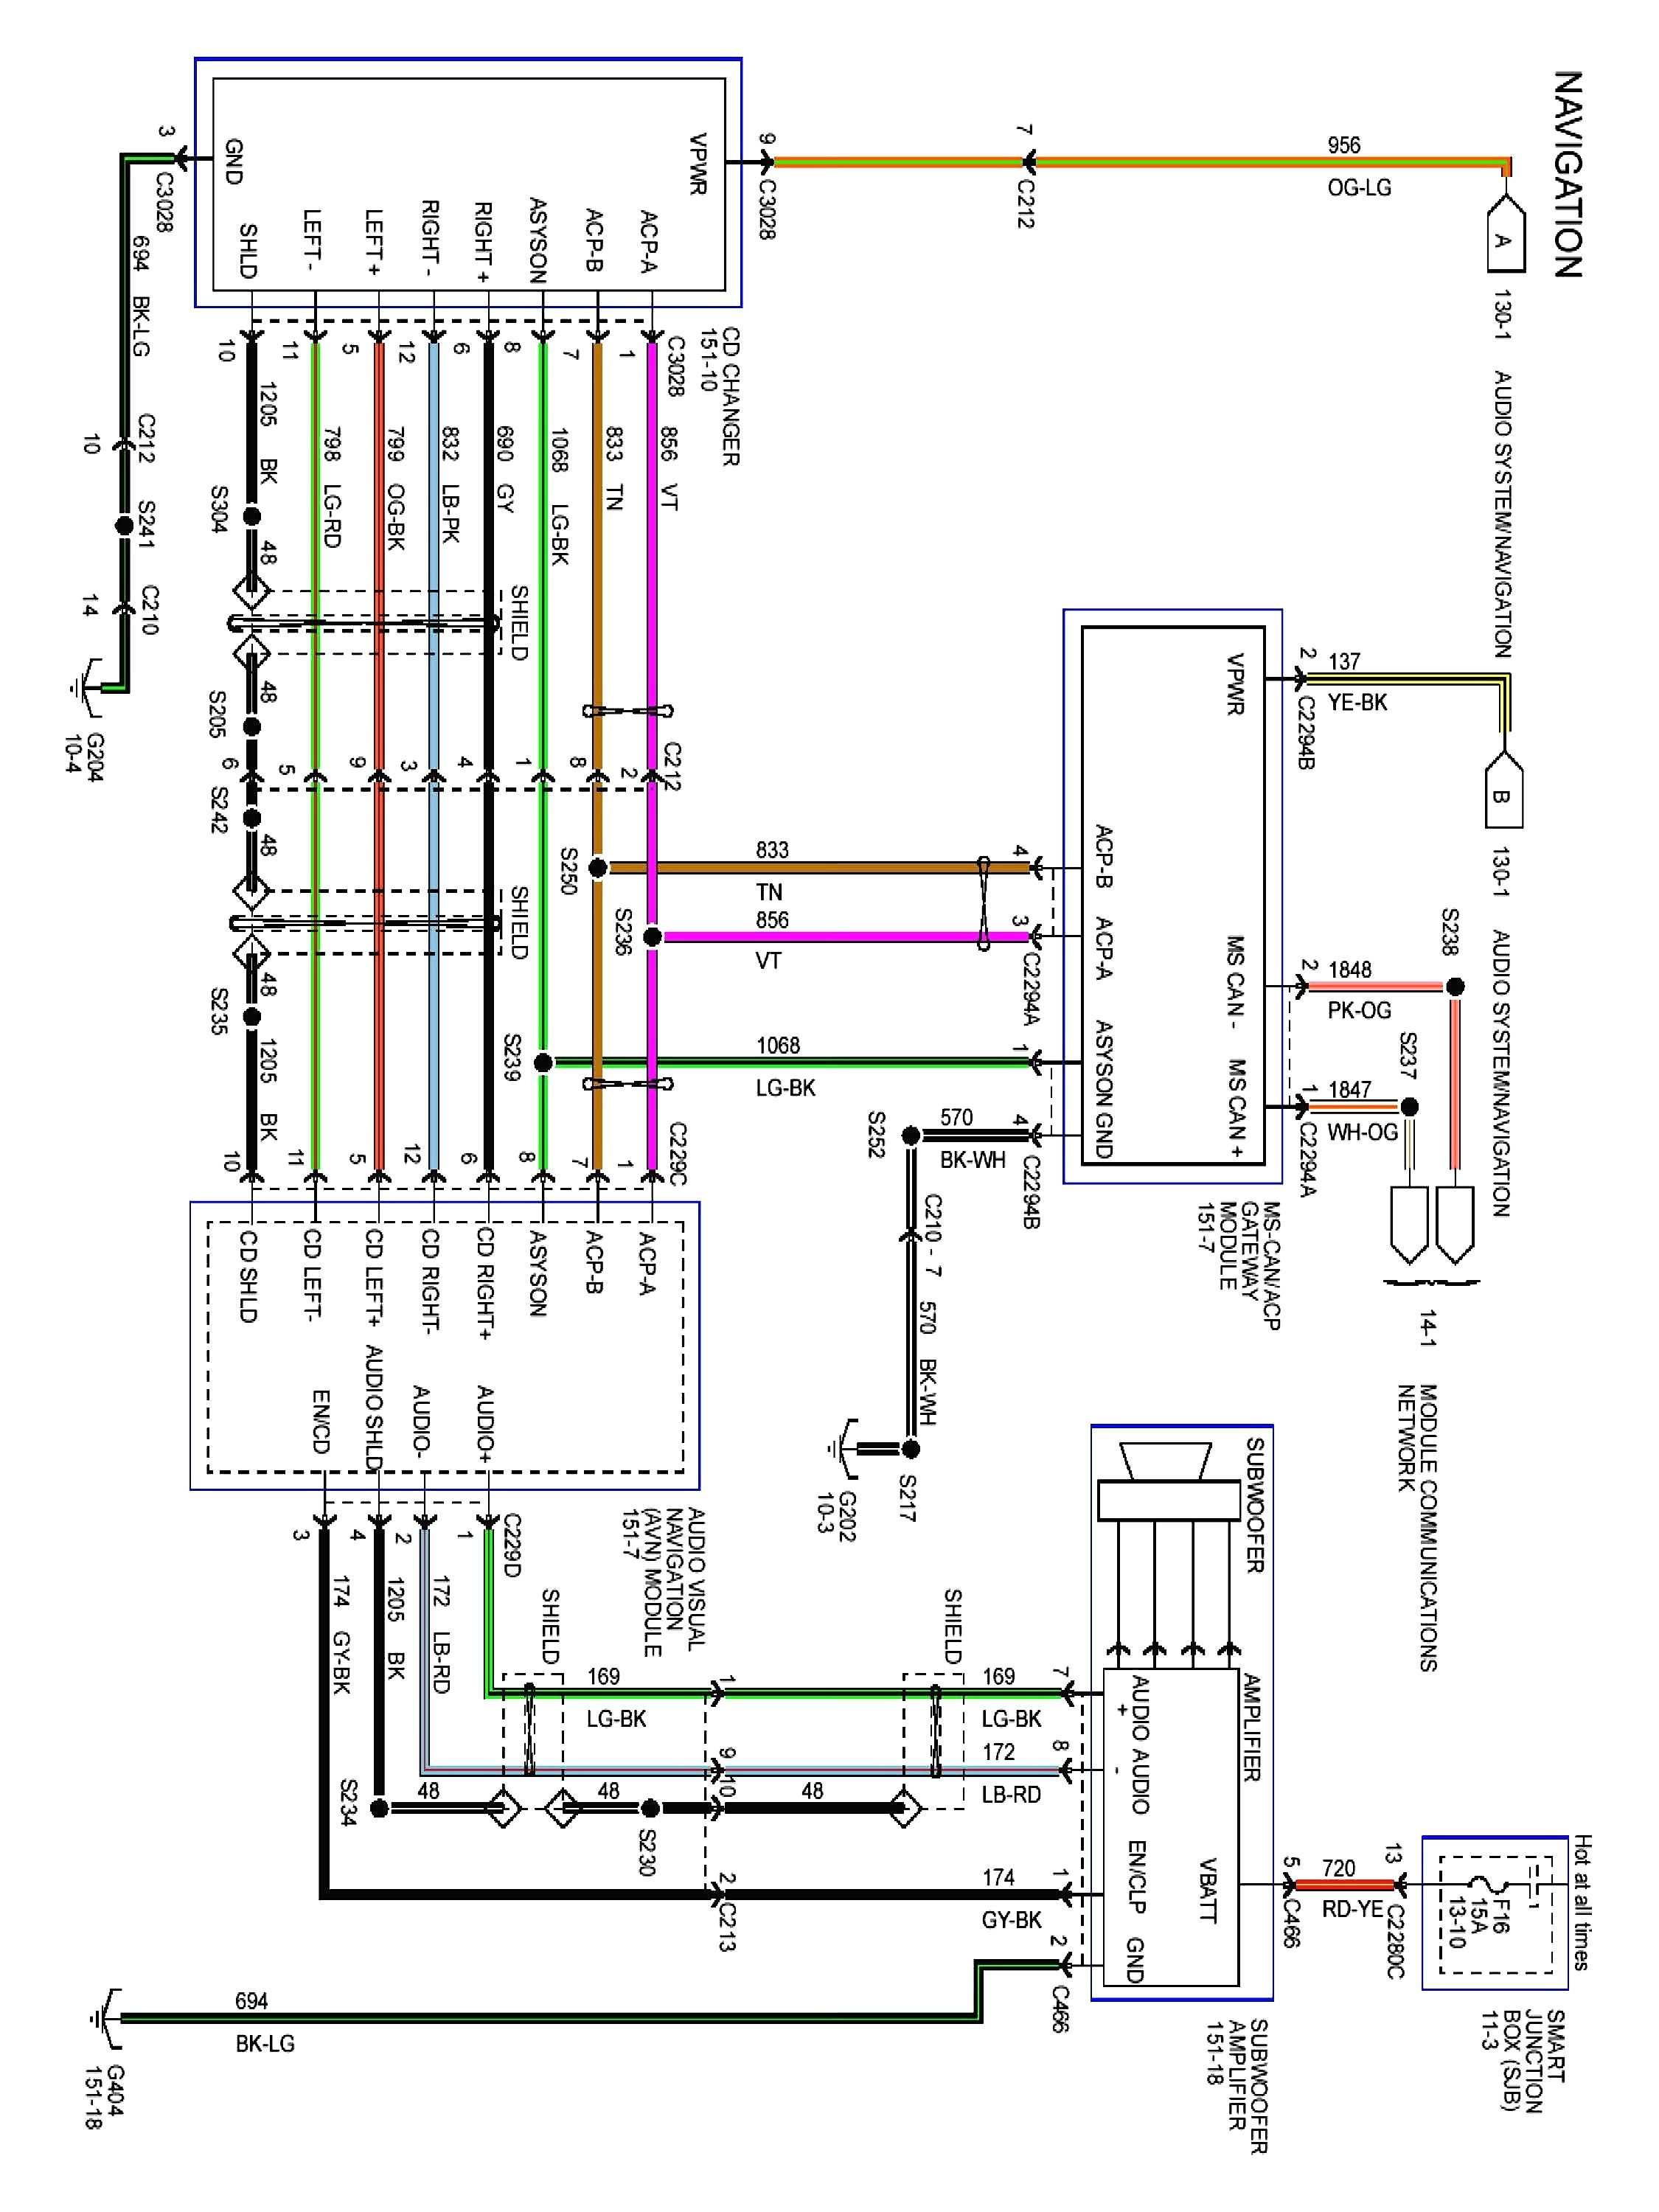 Ford 5610 Cableado Diagrama De Cableado Ford Expedition Electrical Wiring Diagram Trailer Wiring Diagram